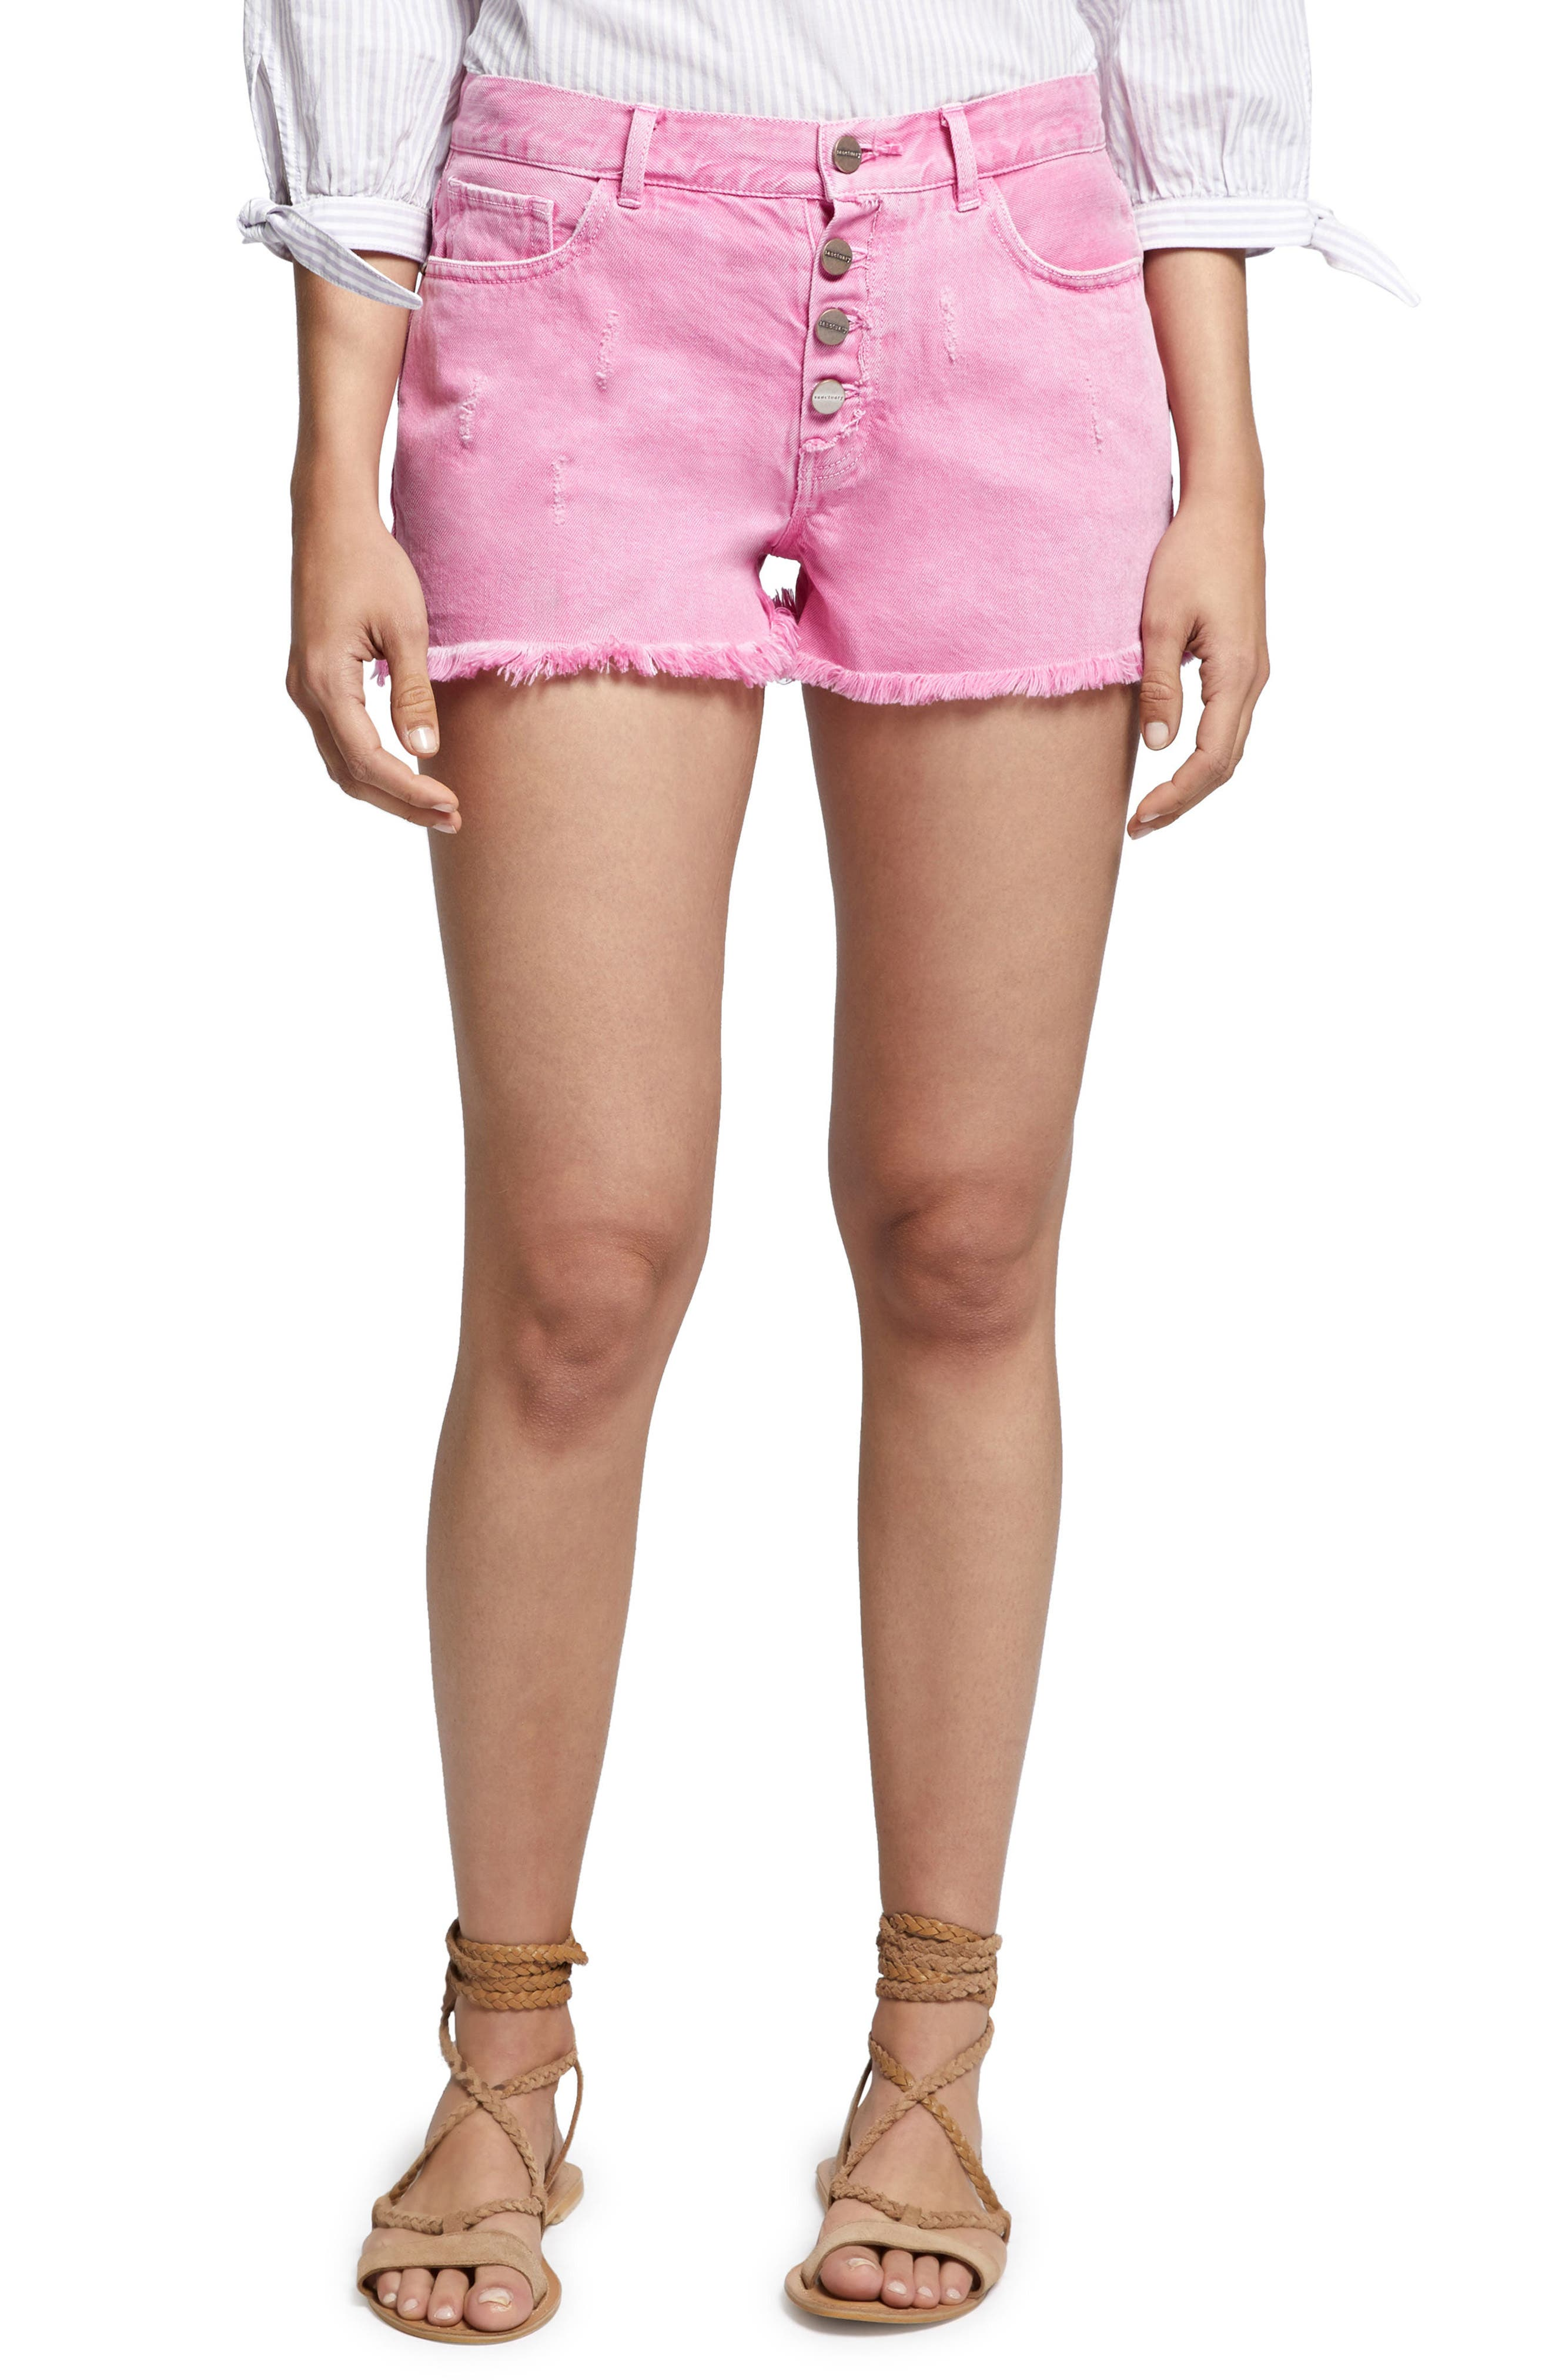 Wild Cherry Fringed Jean Shorts,                             Main thumbnail 1, color,                             Washed Wild Cherry